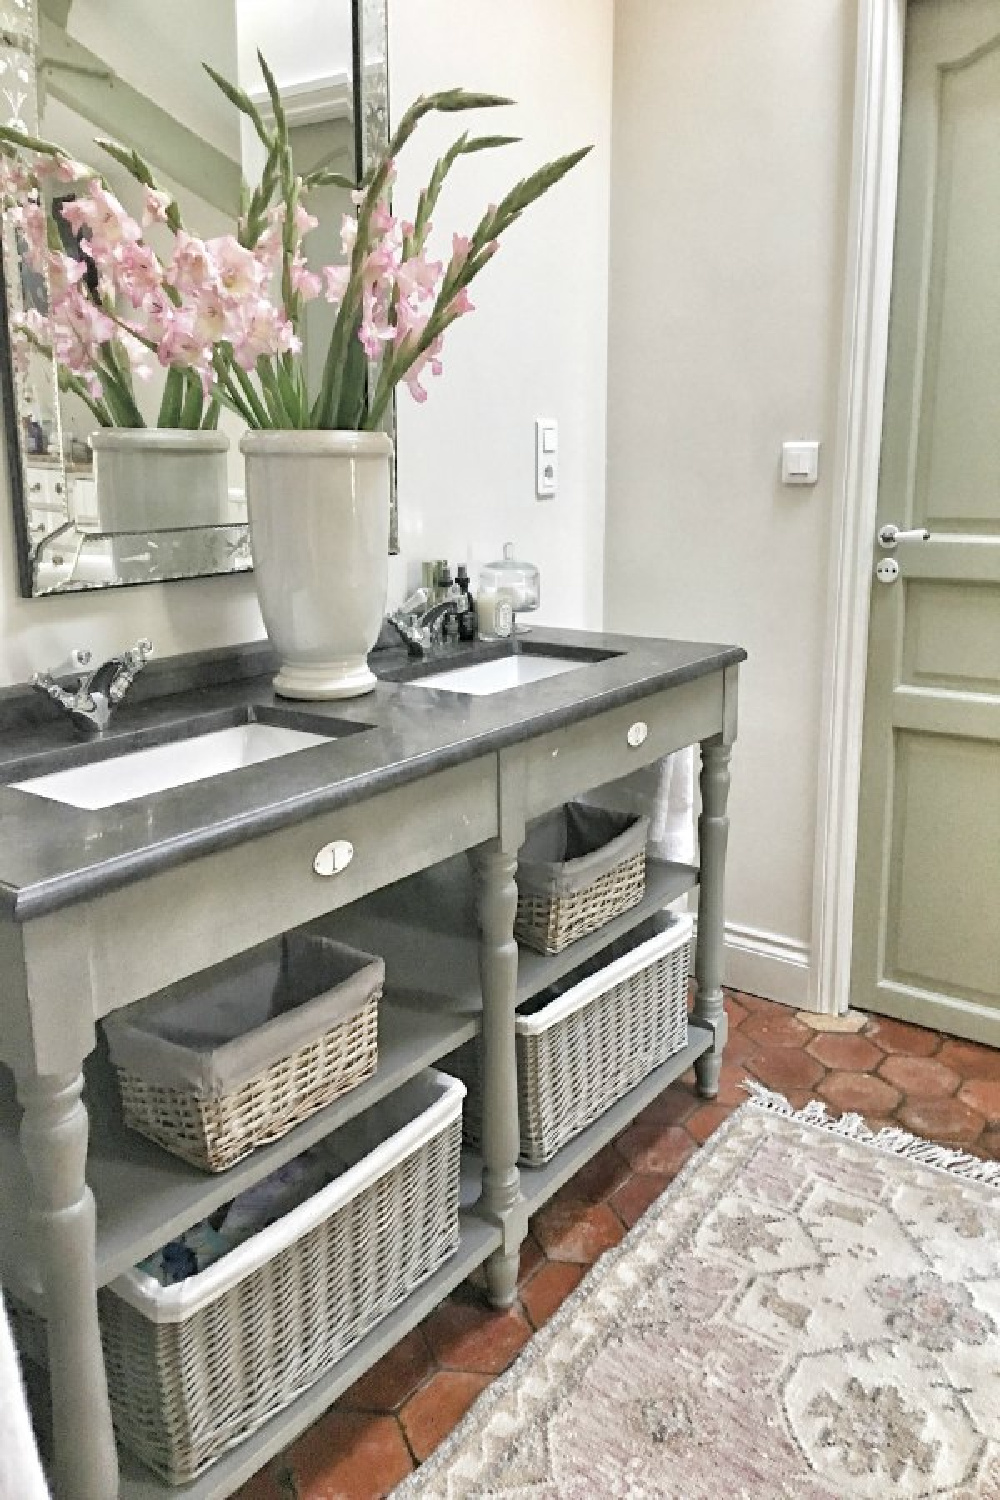 Double vanity with open shelving in romantic bath. Beautiful French farmhouse design inspiration and house tour (Vivi et Margot). #bathroomdecor #interiordesign #frenchfarmhouse #bathroomvanity